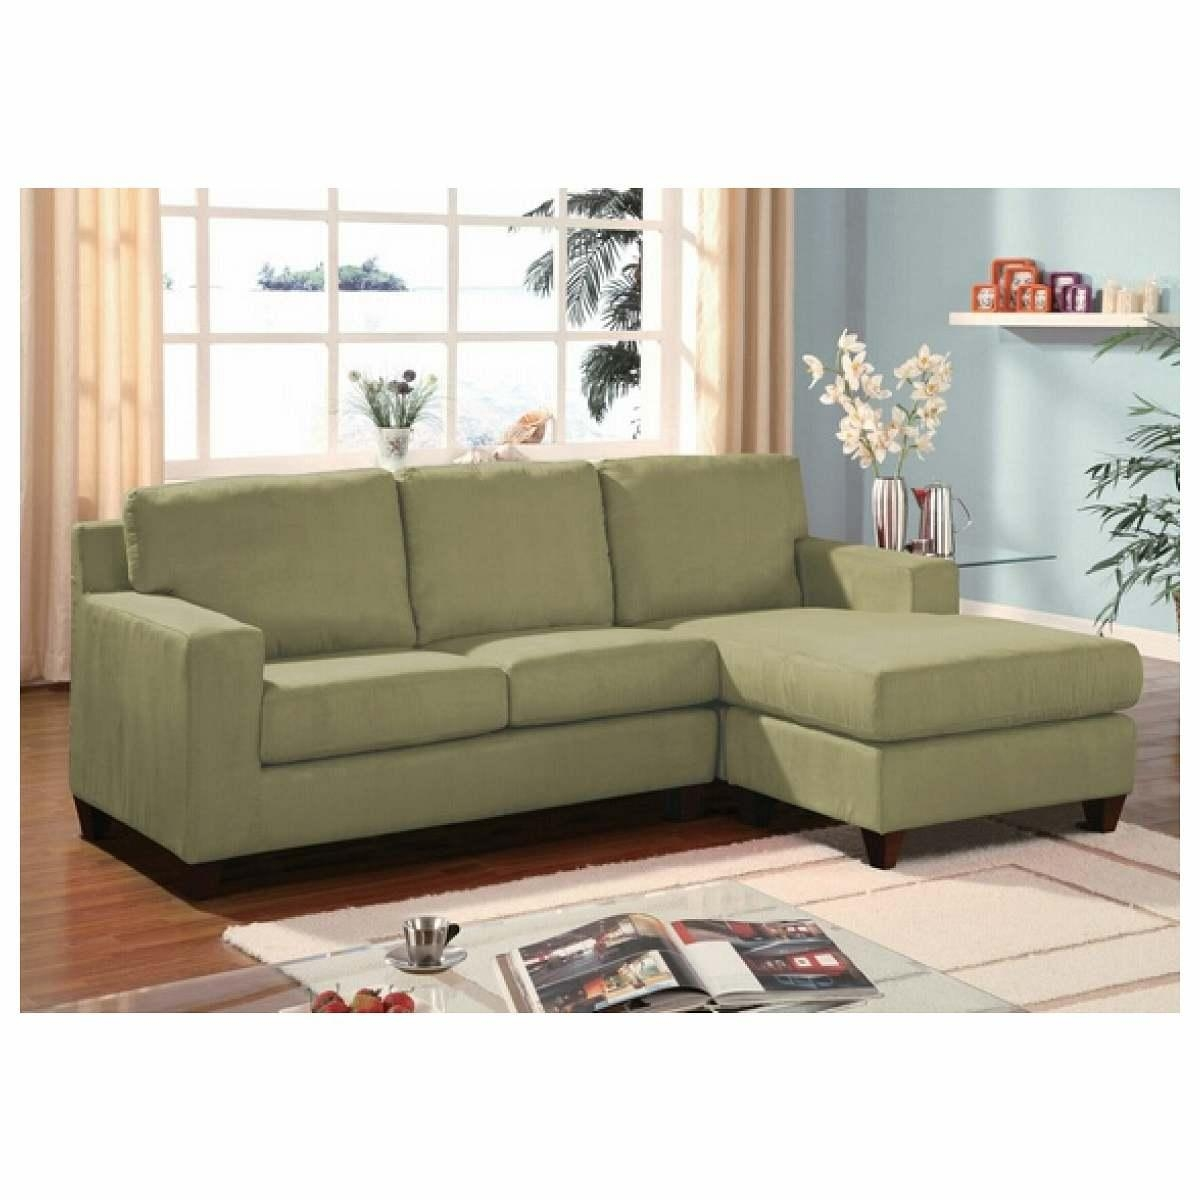 Furniture Home : Green Microfiber Reversible Sectional Sofa With Intended For Green Sectional Sofa With Chaise (Image 4 of 15)